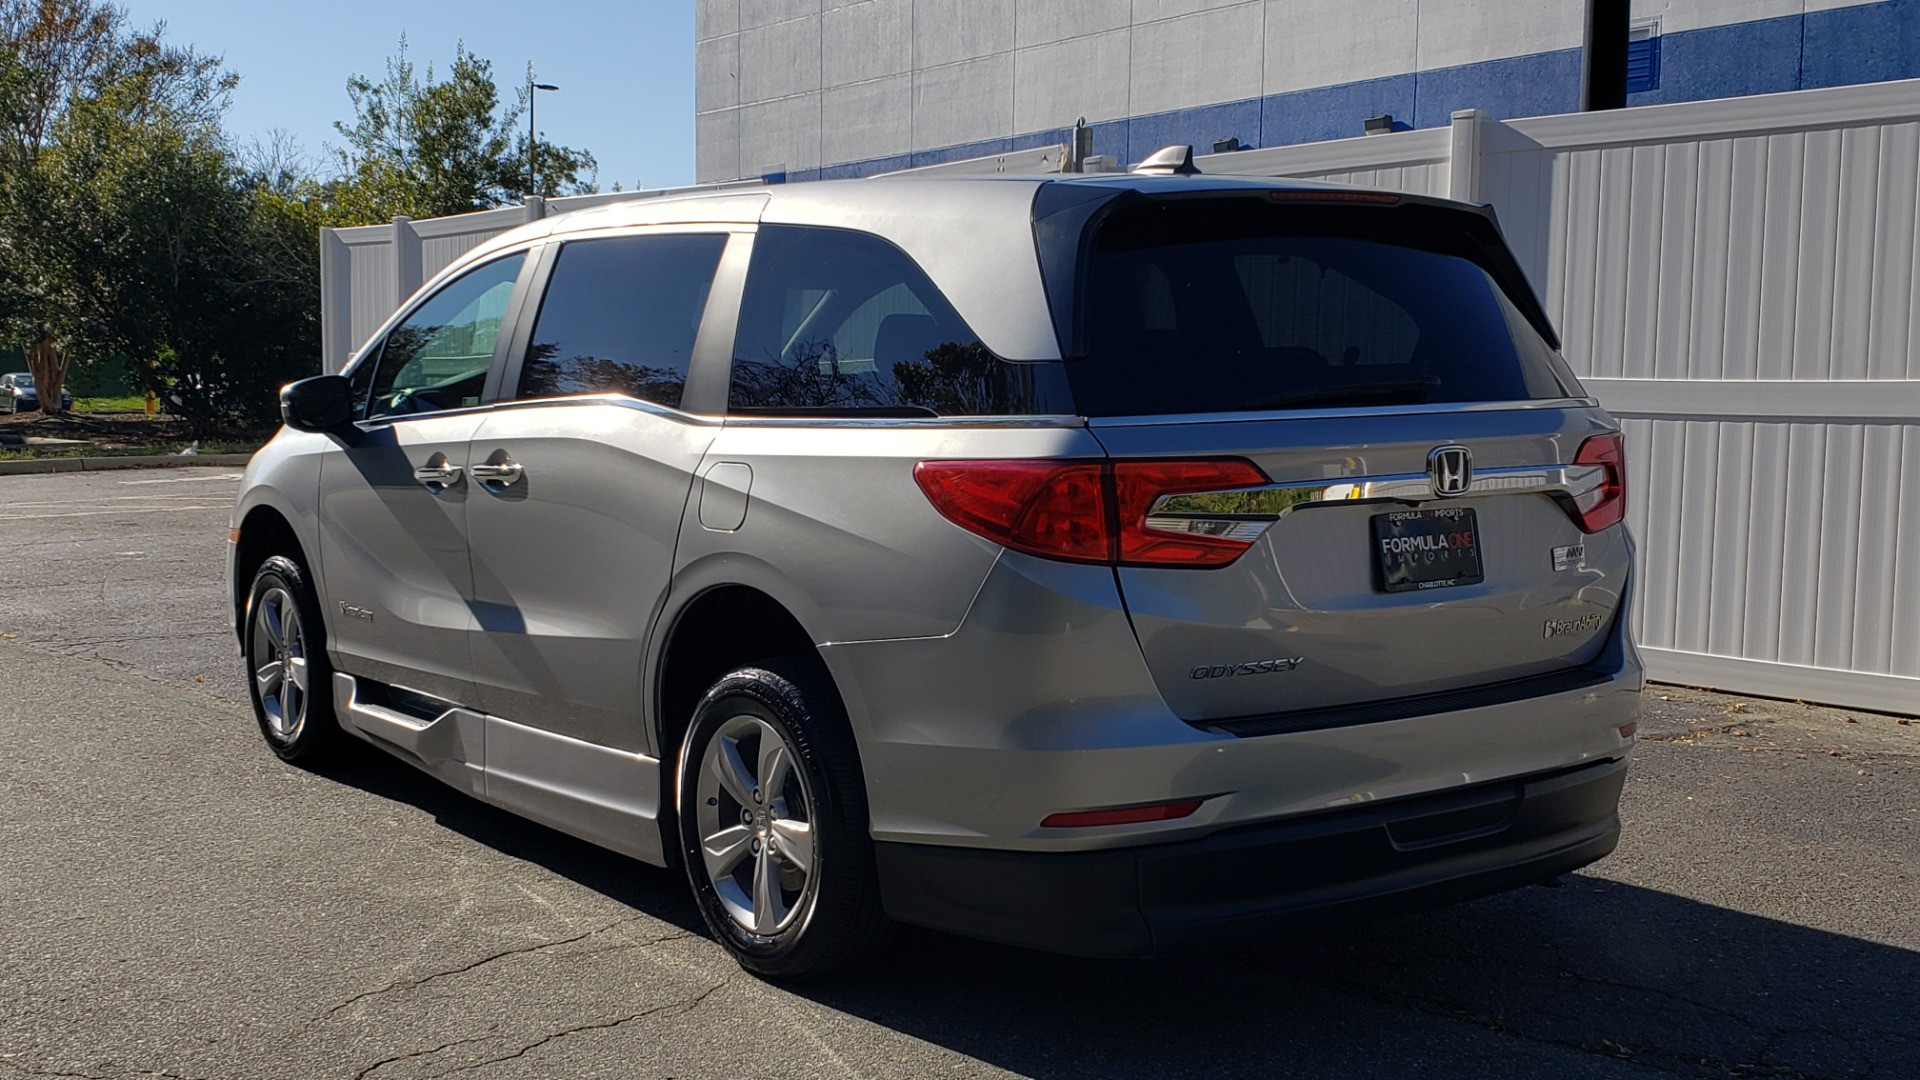 Used 2019 Honda ODYSSEY EX-L BRAUNABILITY / NAV / RES / LKA / BLUE-RAY / SUNROOF / REARVIEW for sale Sold at Formula Imports in Charlotte NC 28227 3